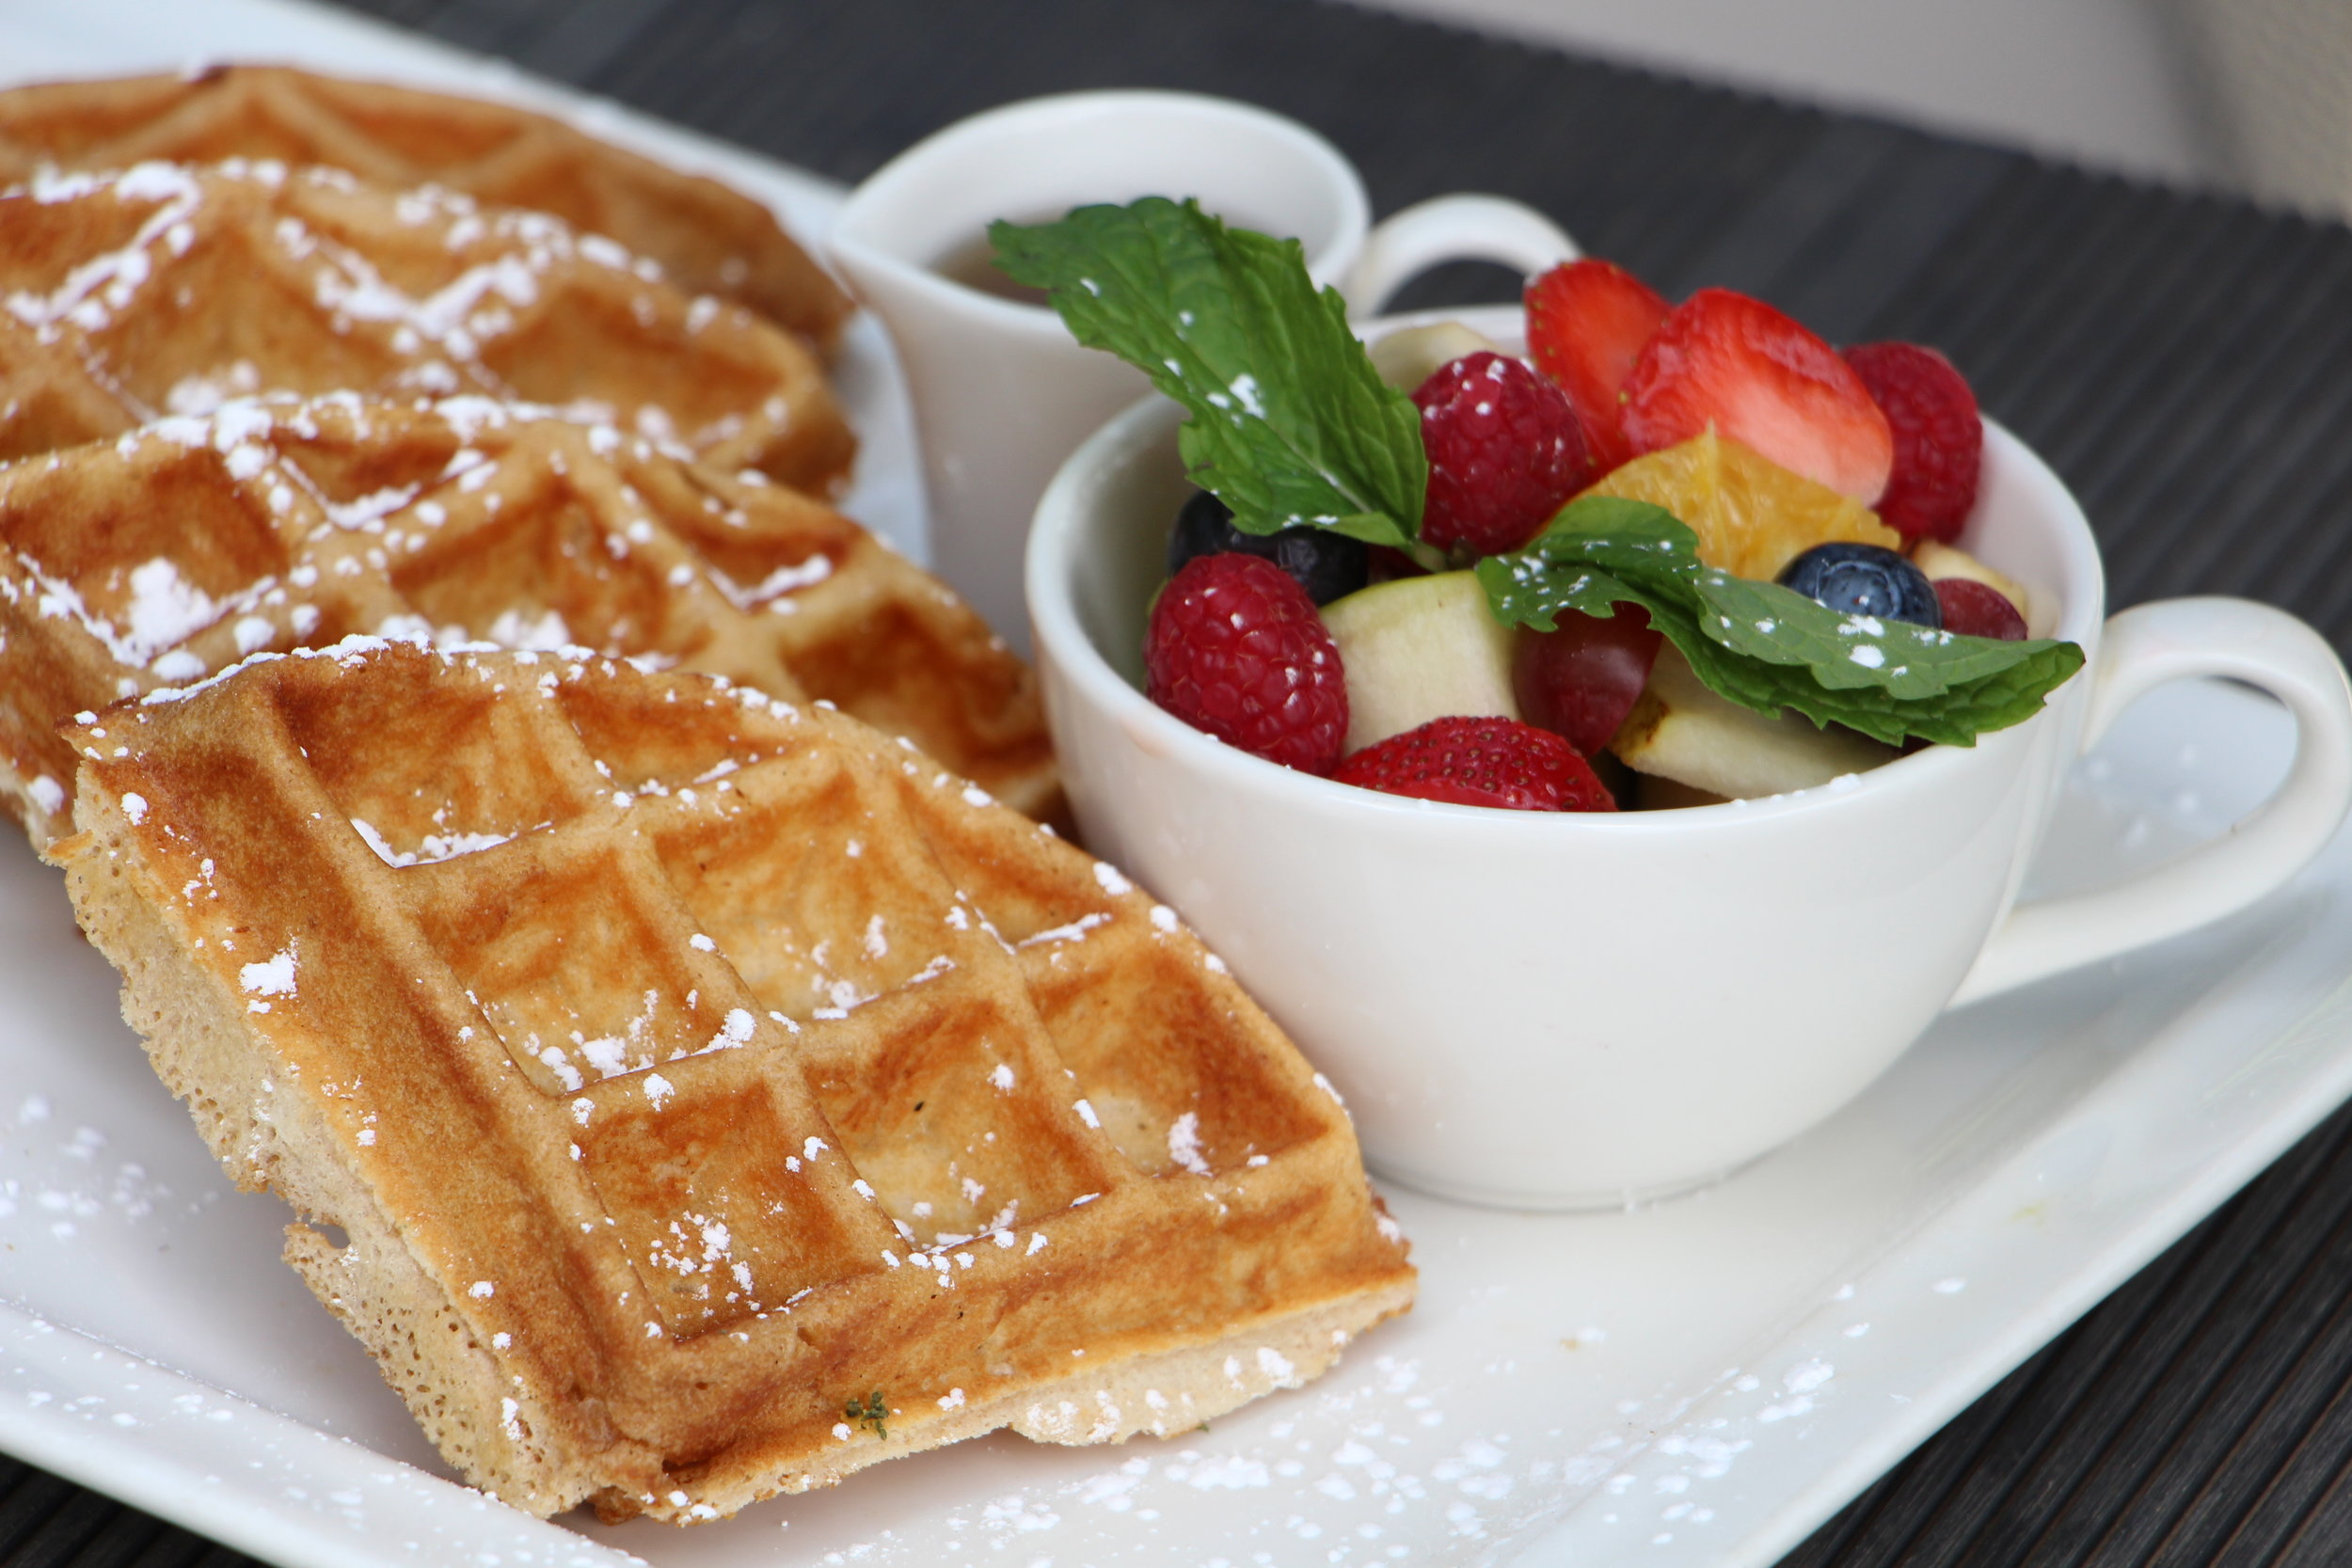 Breakfast is always a good idea - any time of day! Freshly-made and served warm, you can choose a side of fruit or a dollop of ice cream.